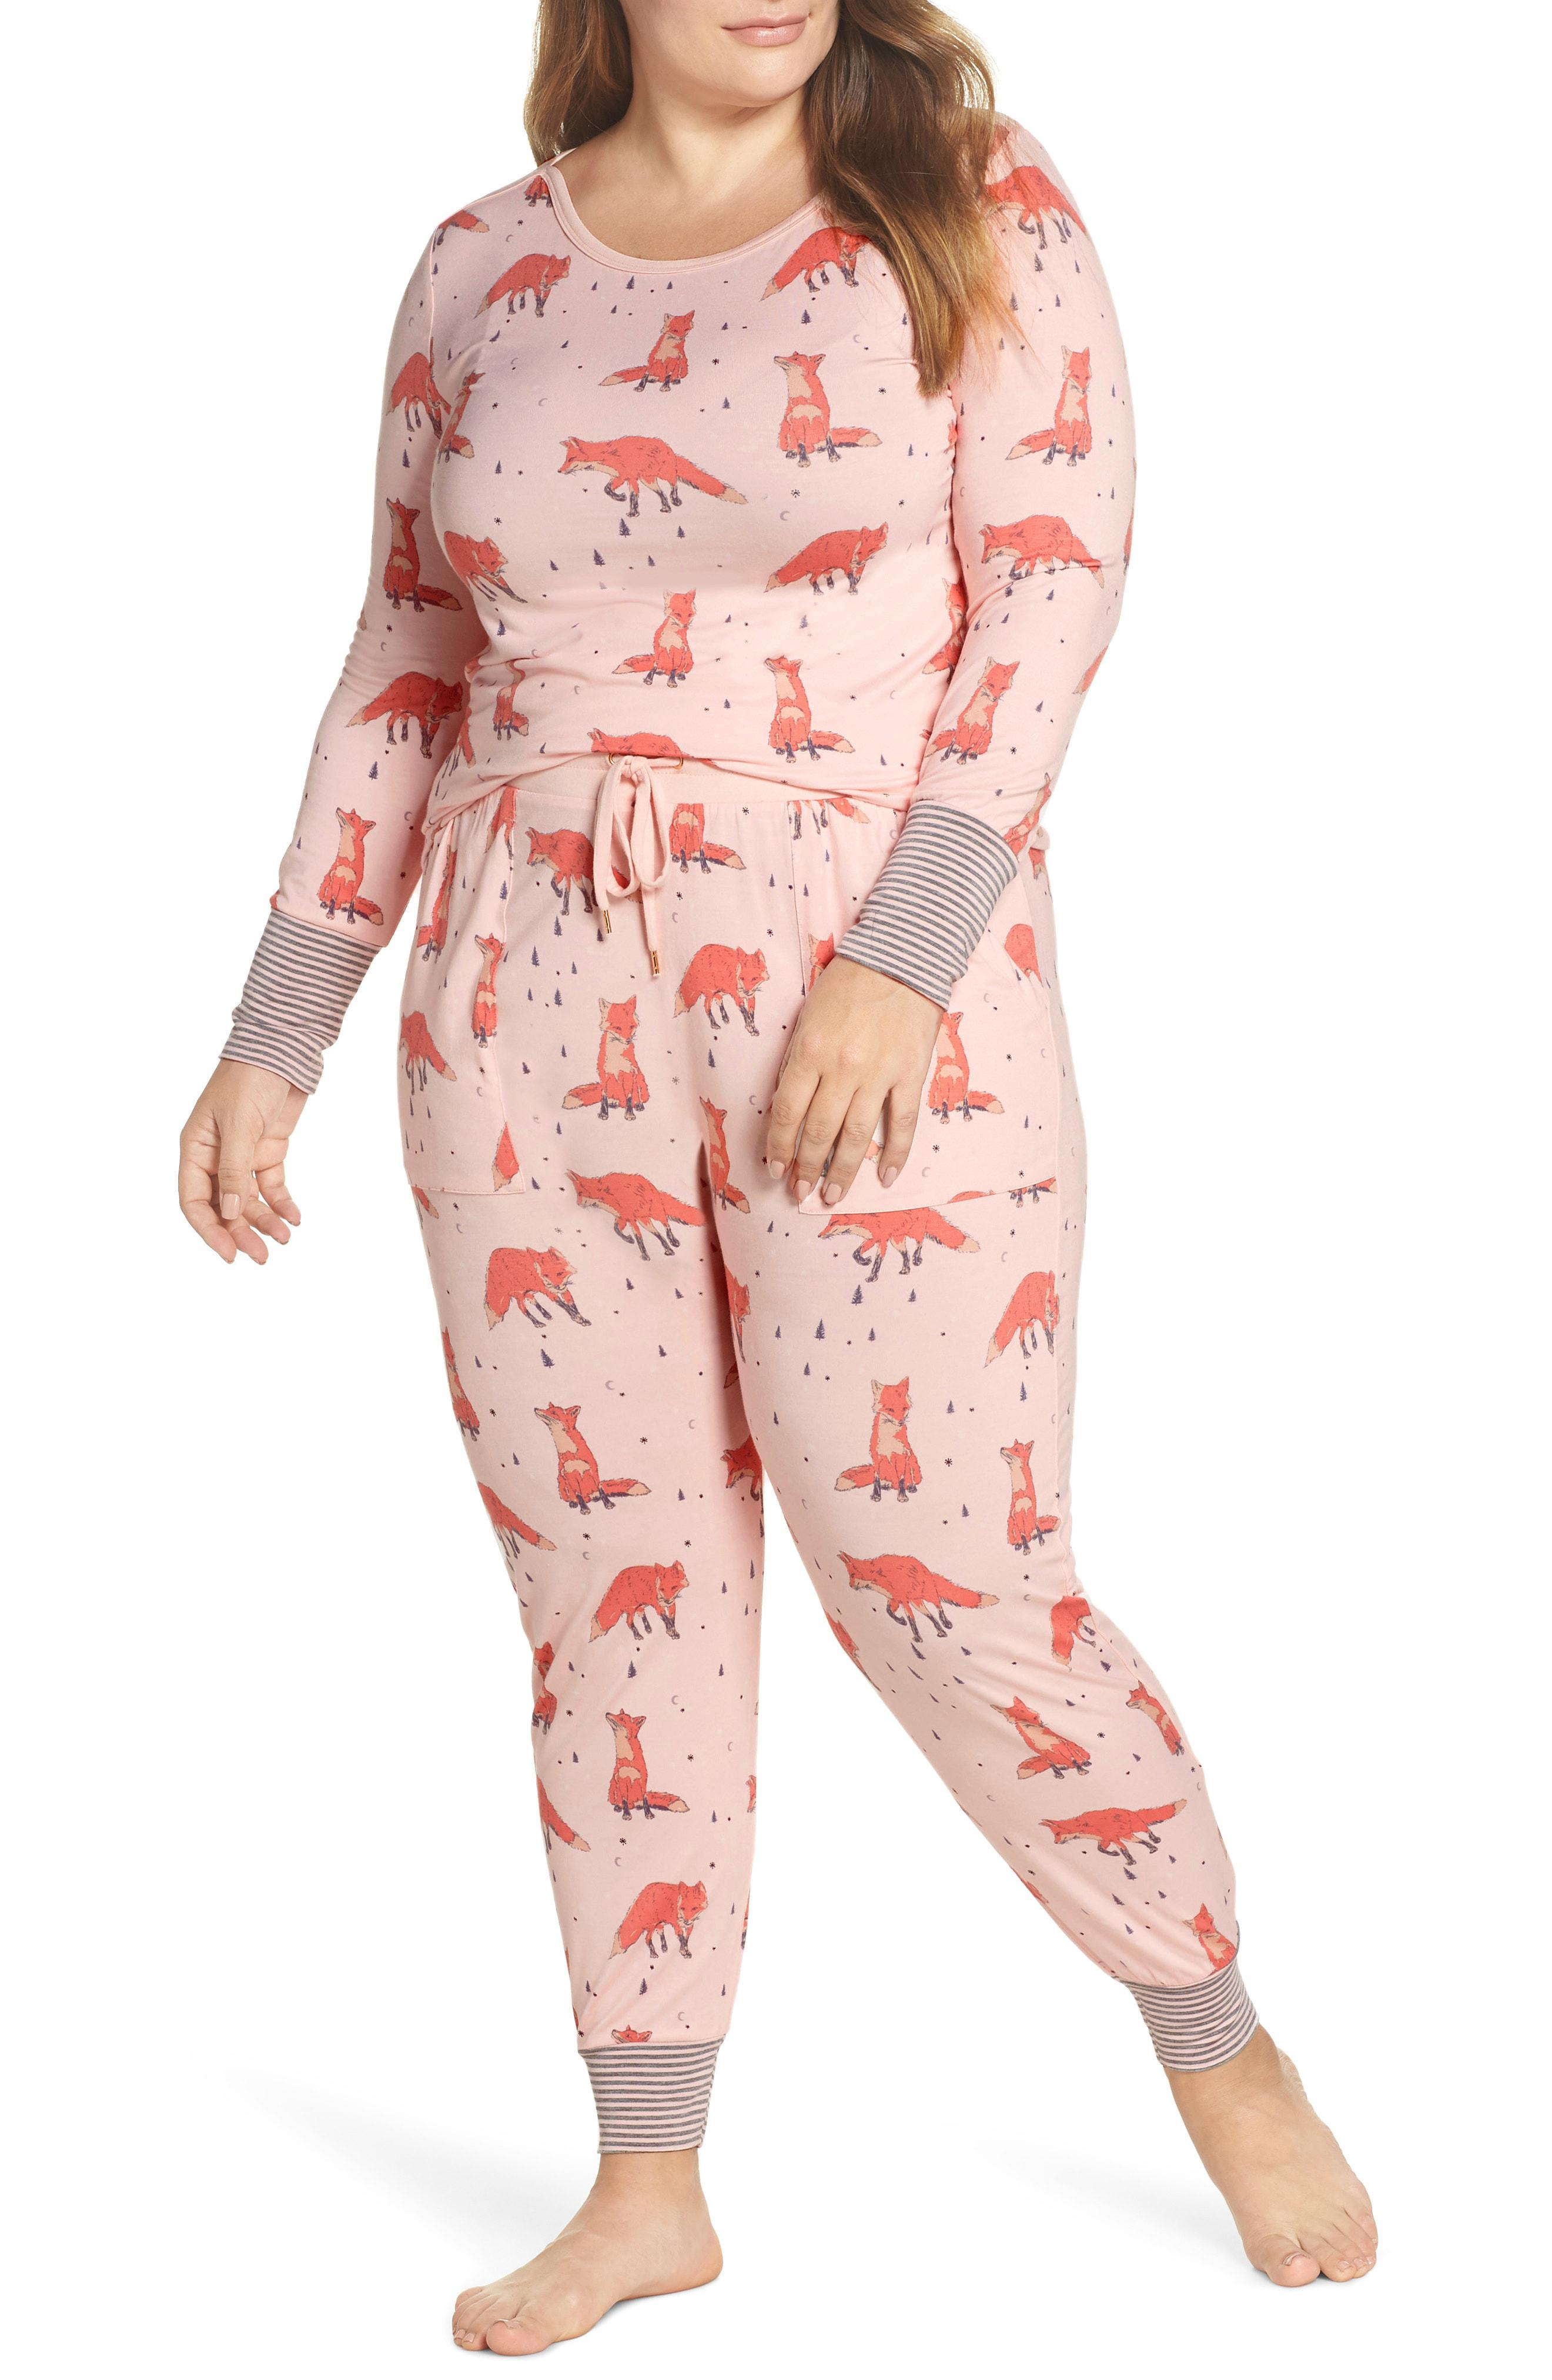 90a8e21fa5132 Lyst - Honeydew Intimates Jersey Pajamas in Pink